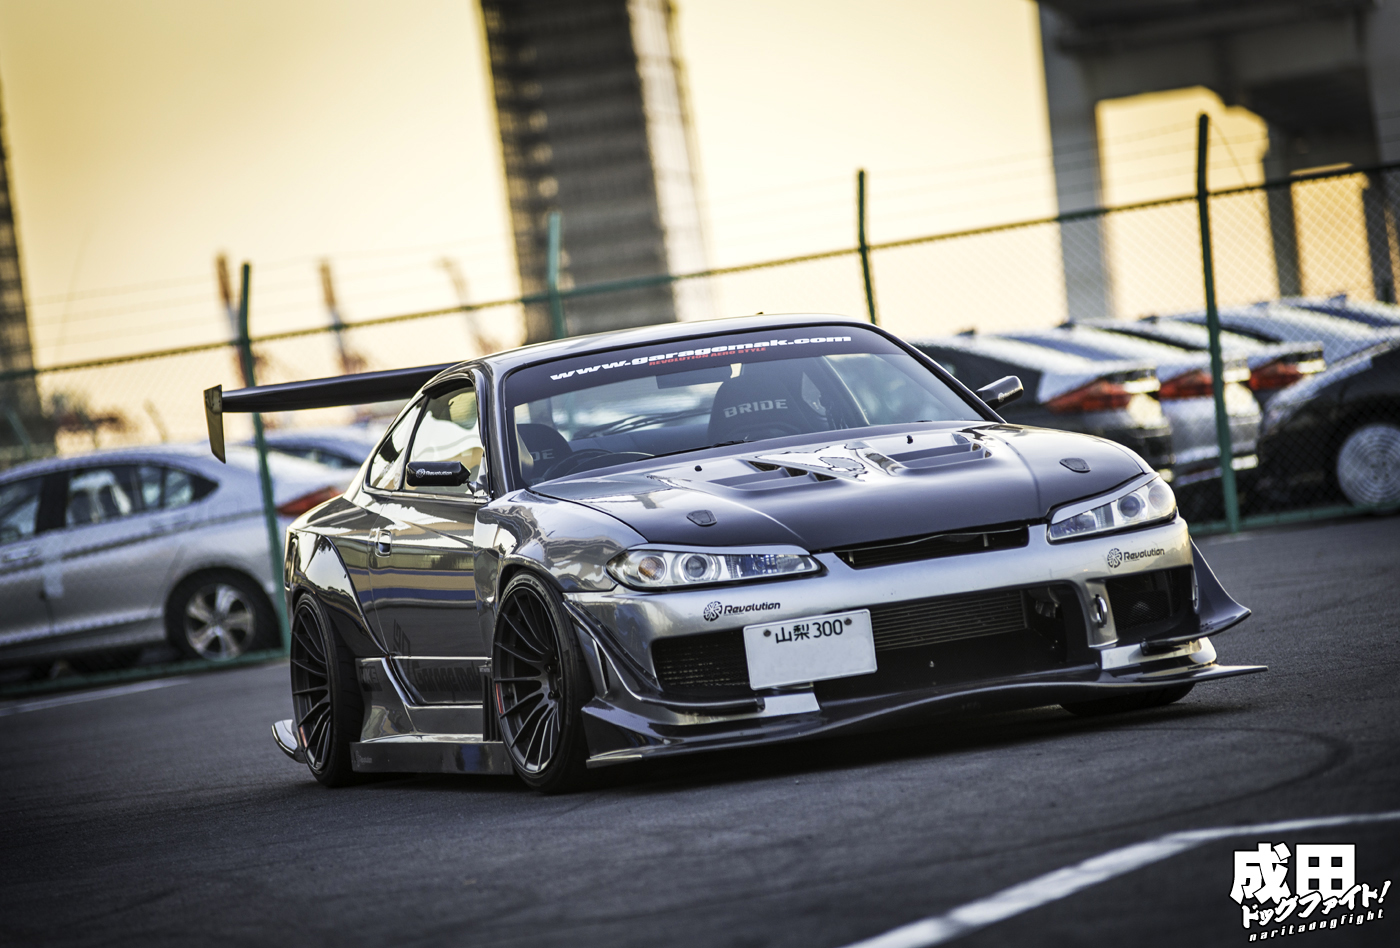 The Stunning Garage Mak Nissan S15 Stancenation